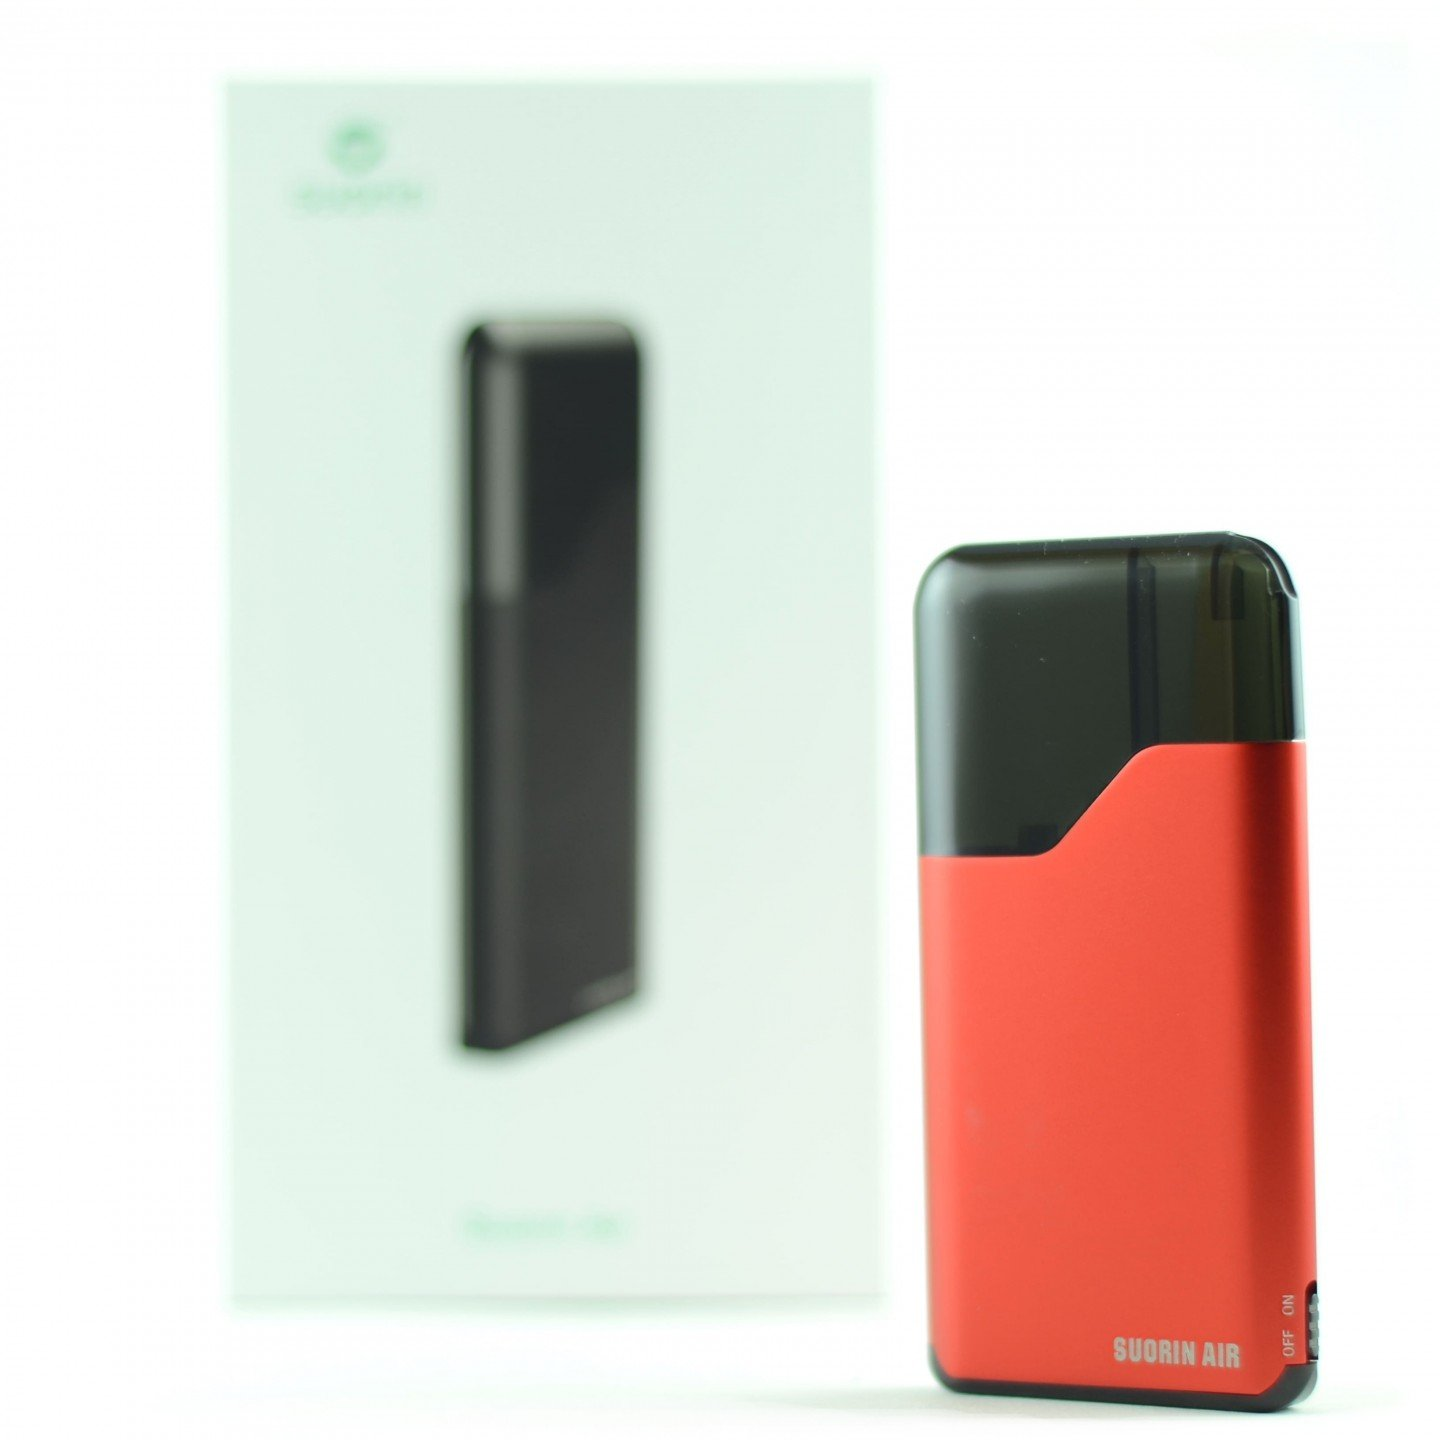 #6 Suorin Air Starter Kit